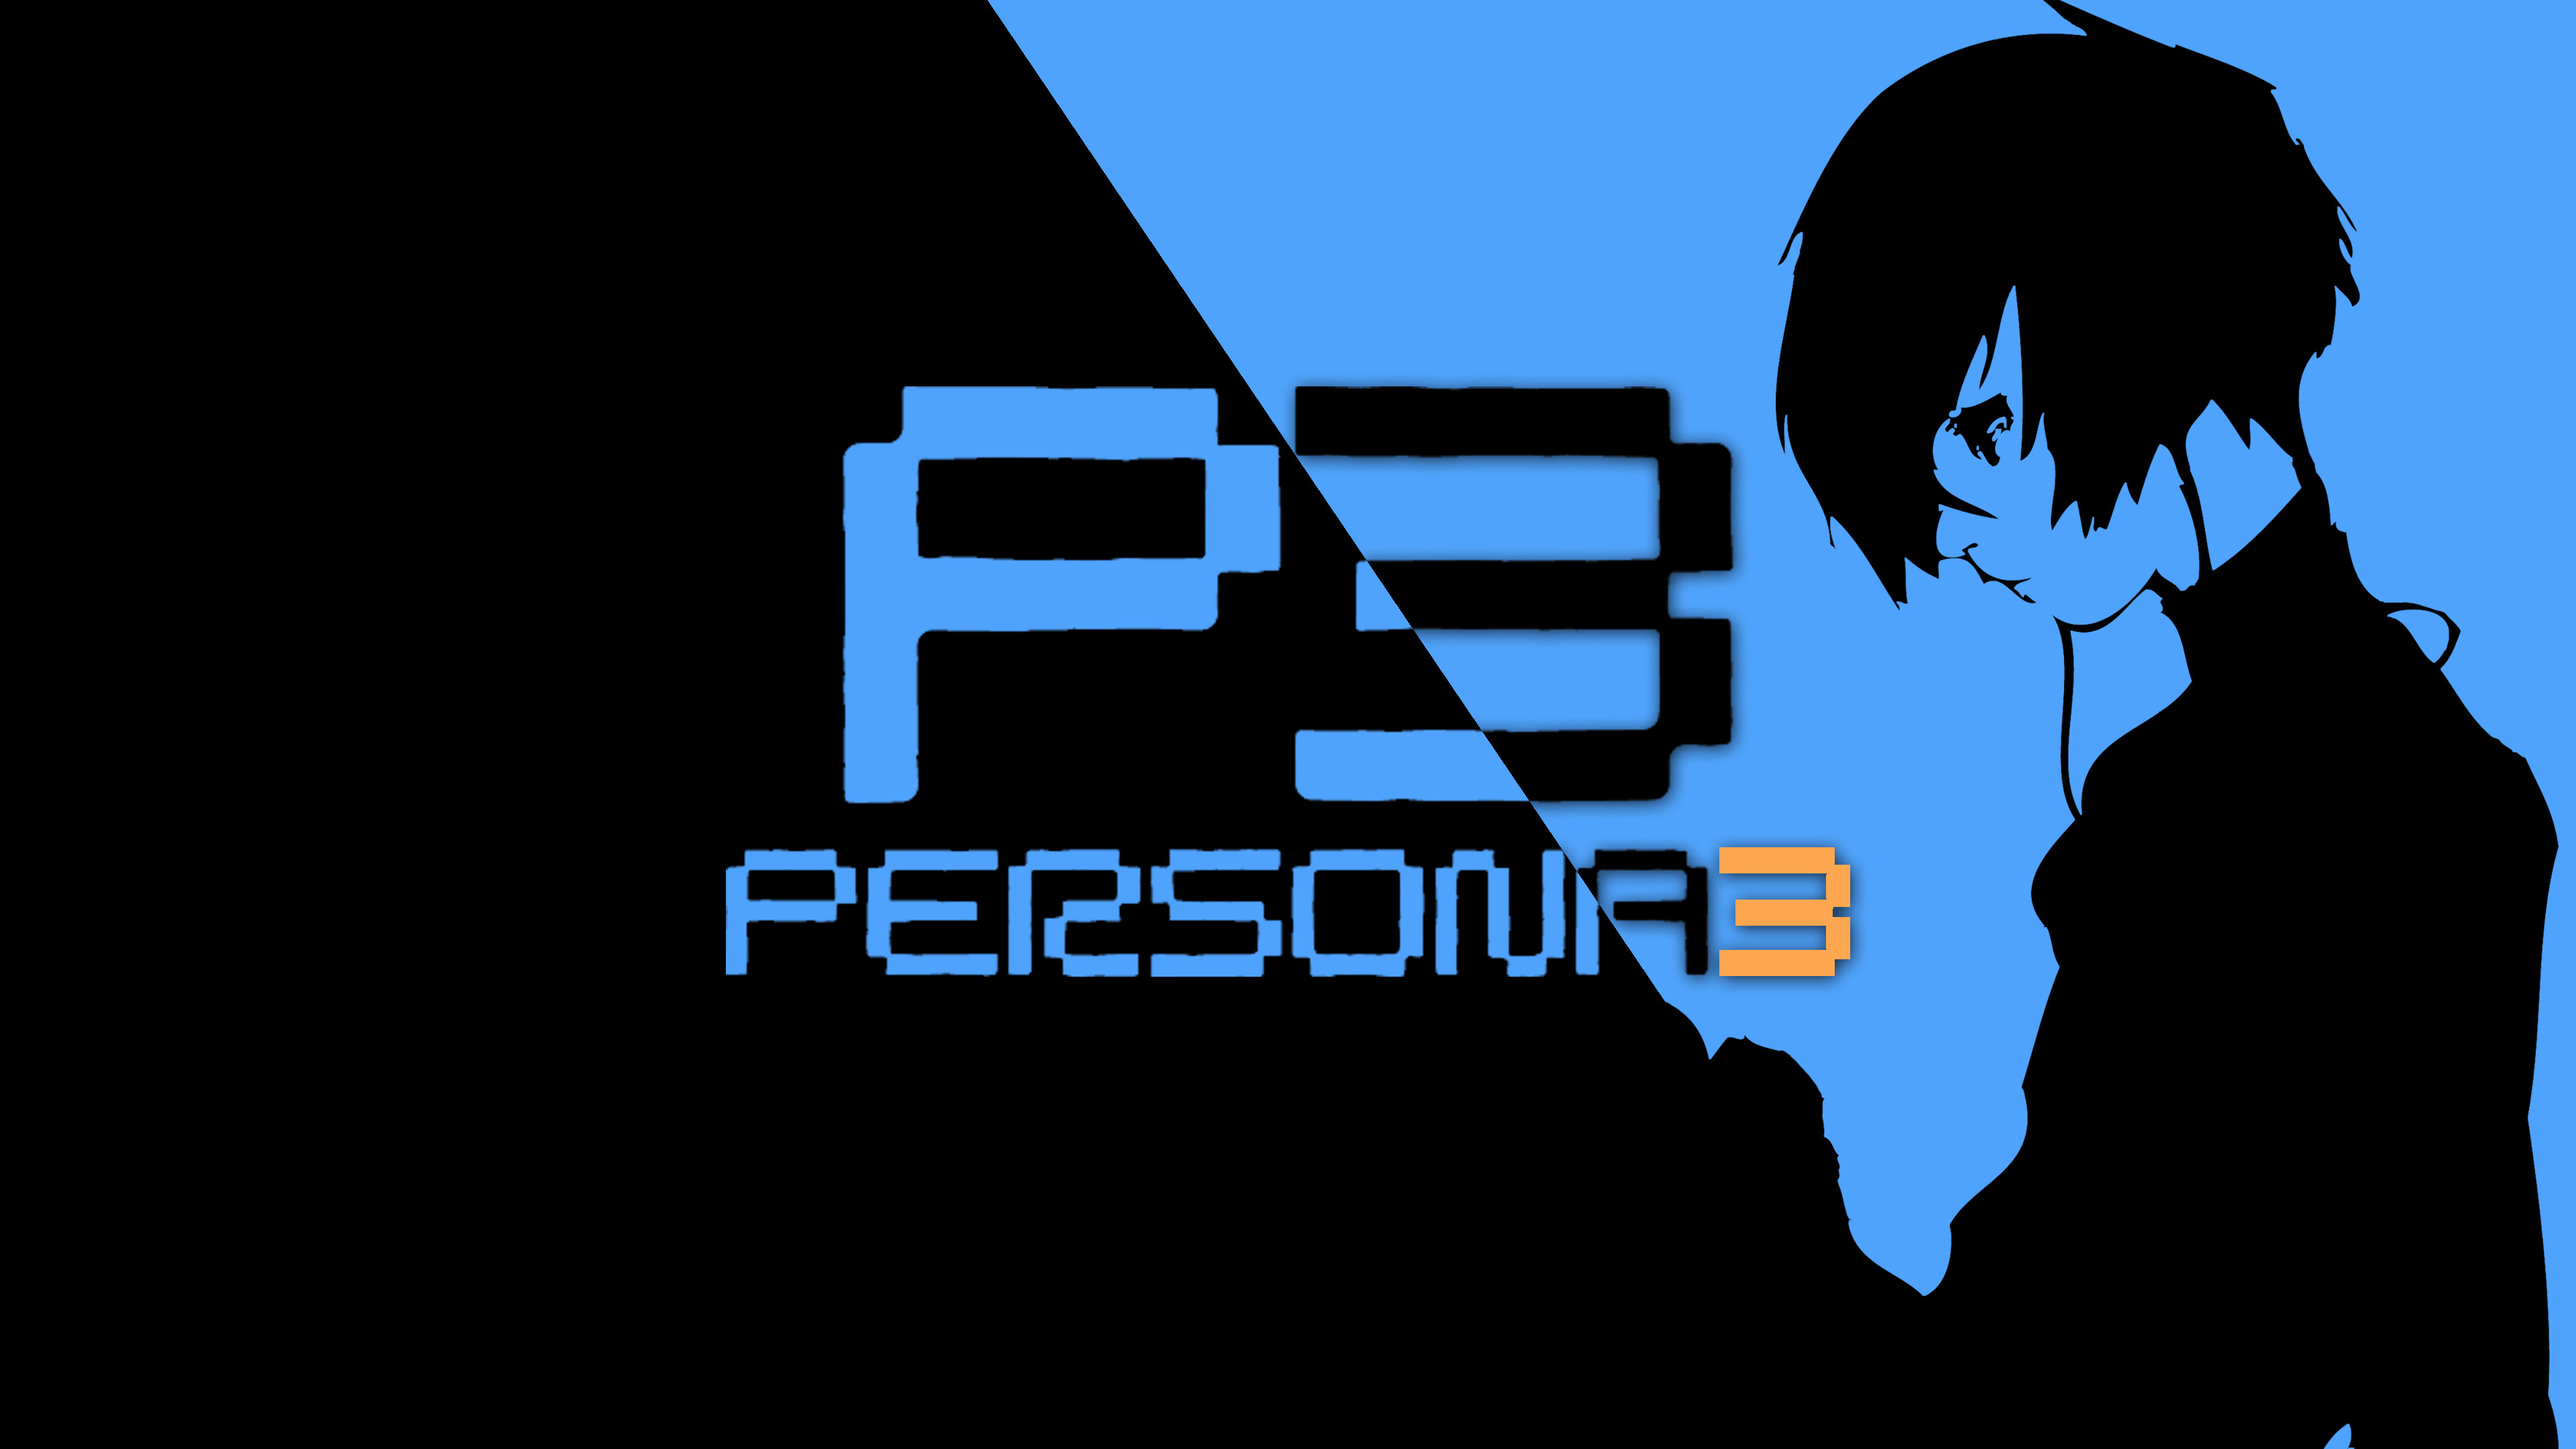 You should check out my older P3 wallpaper, which is arguably way better  than this one.